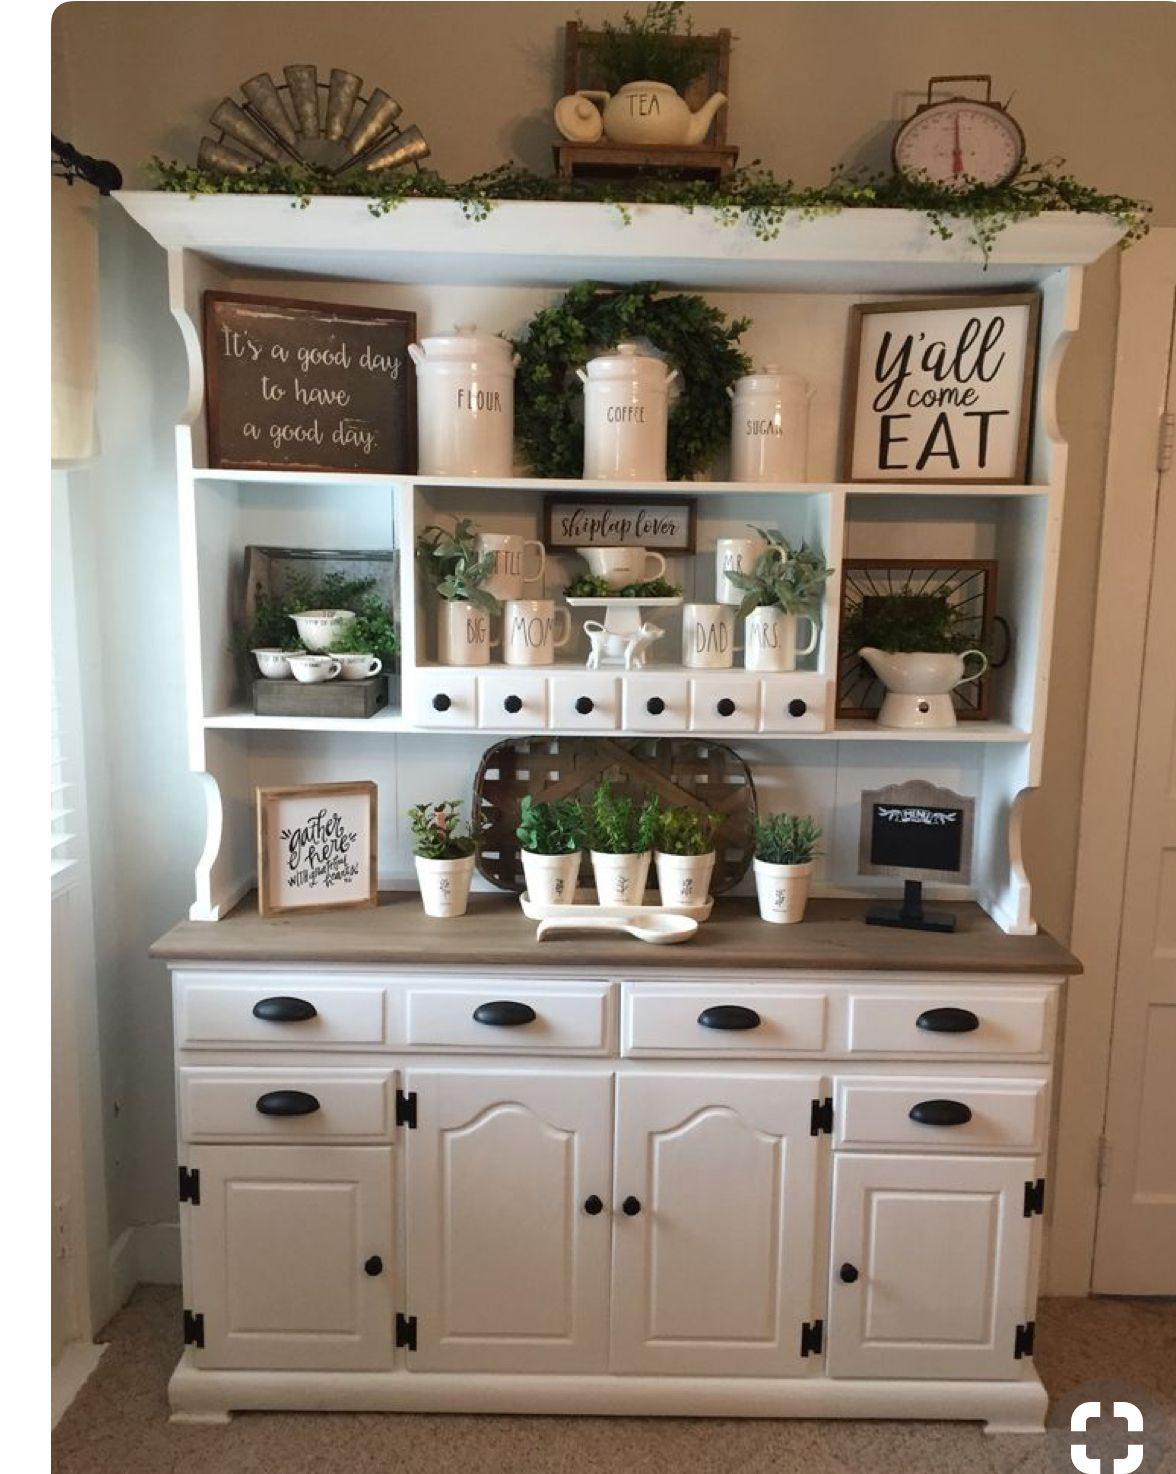 Best Idea For Top Of Pantry Cabinet Cottage Style Kitchen 400 x 300